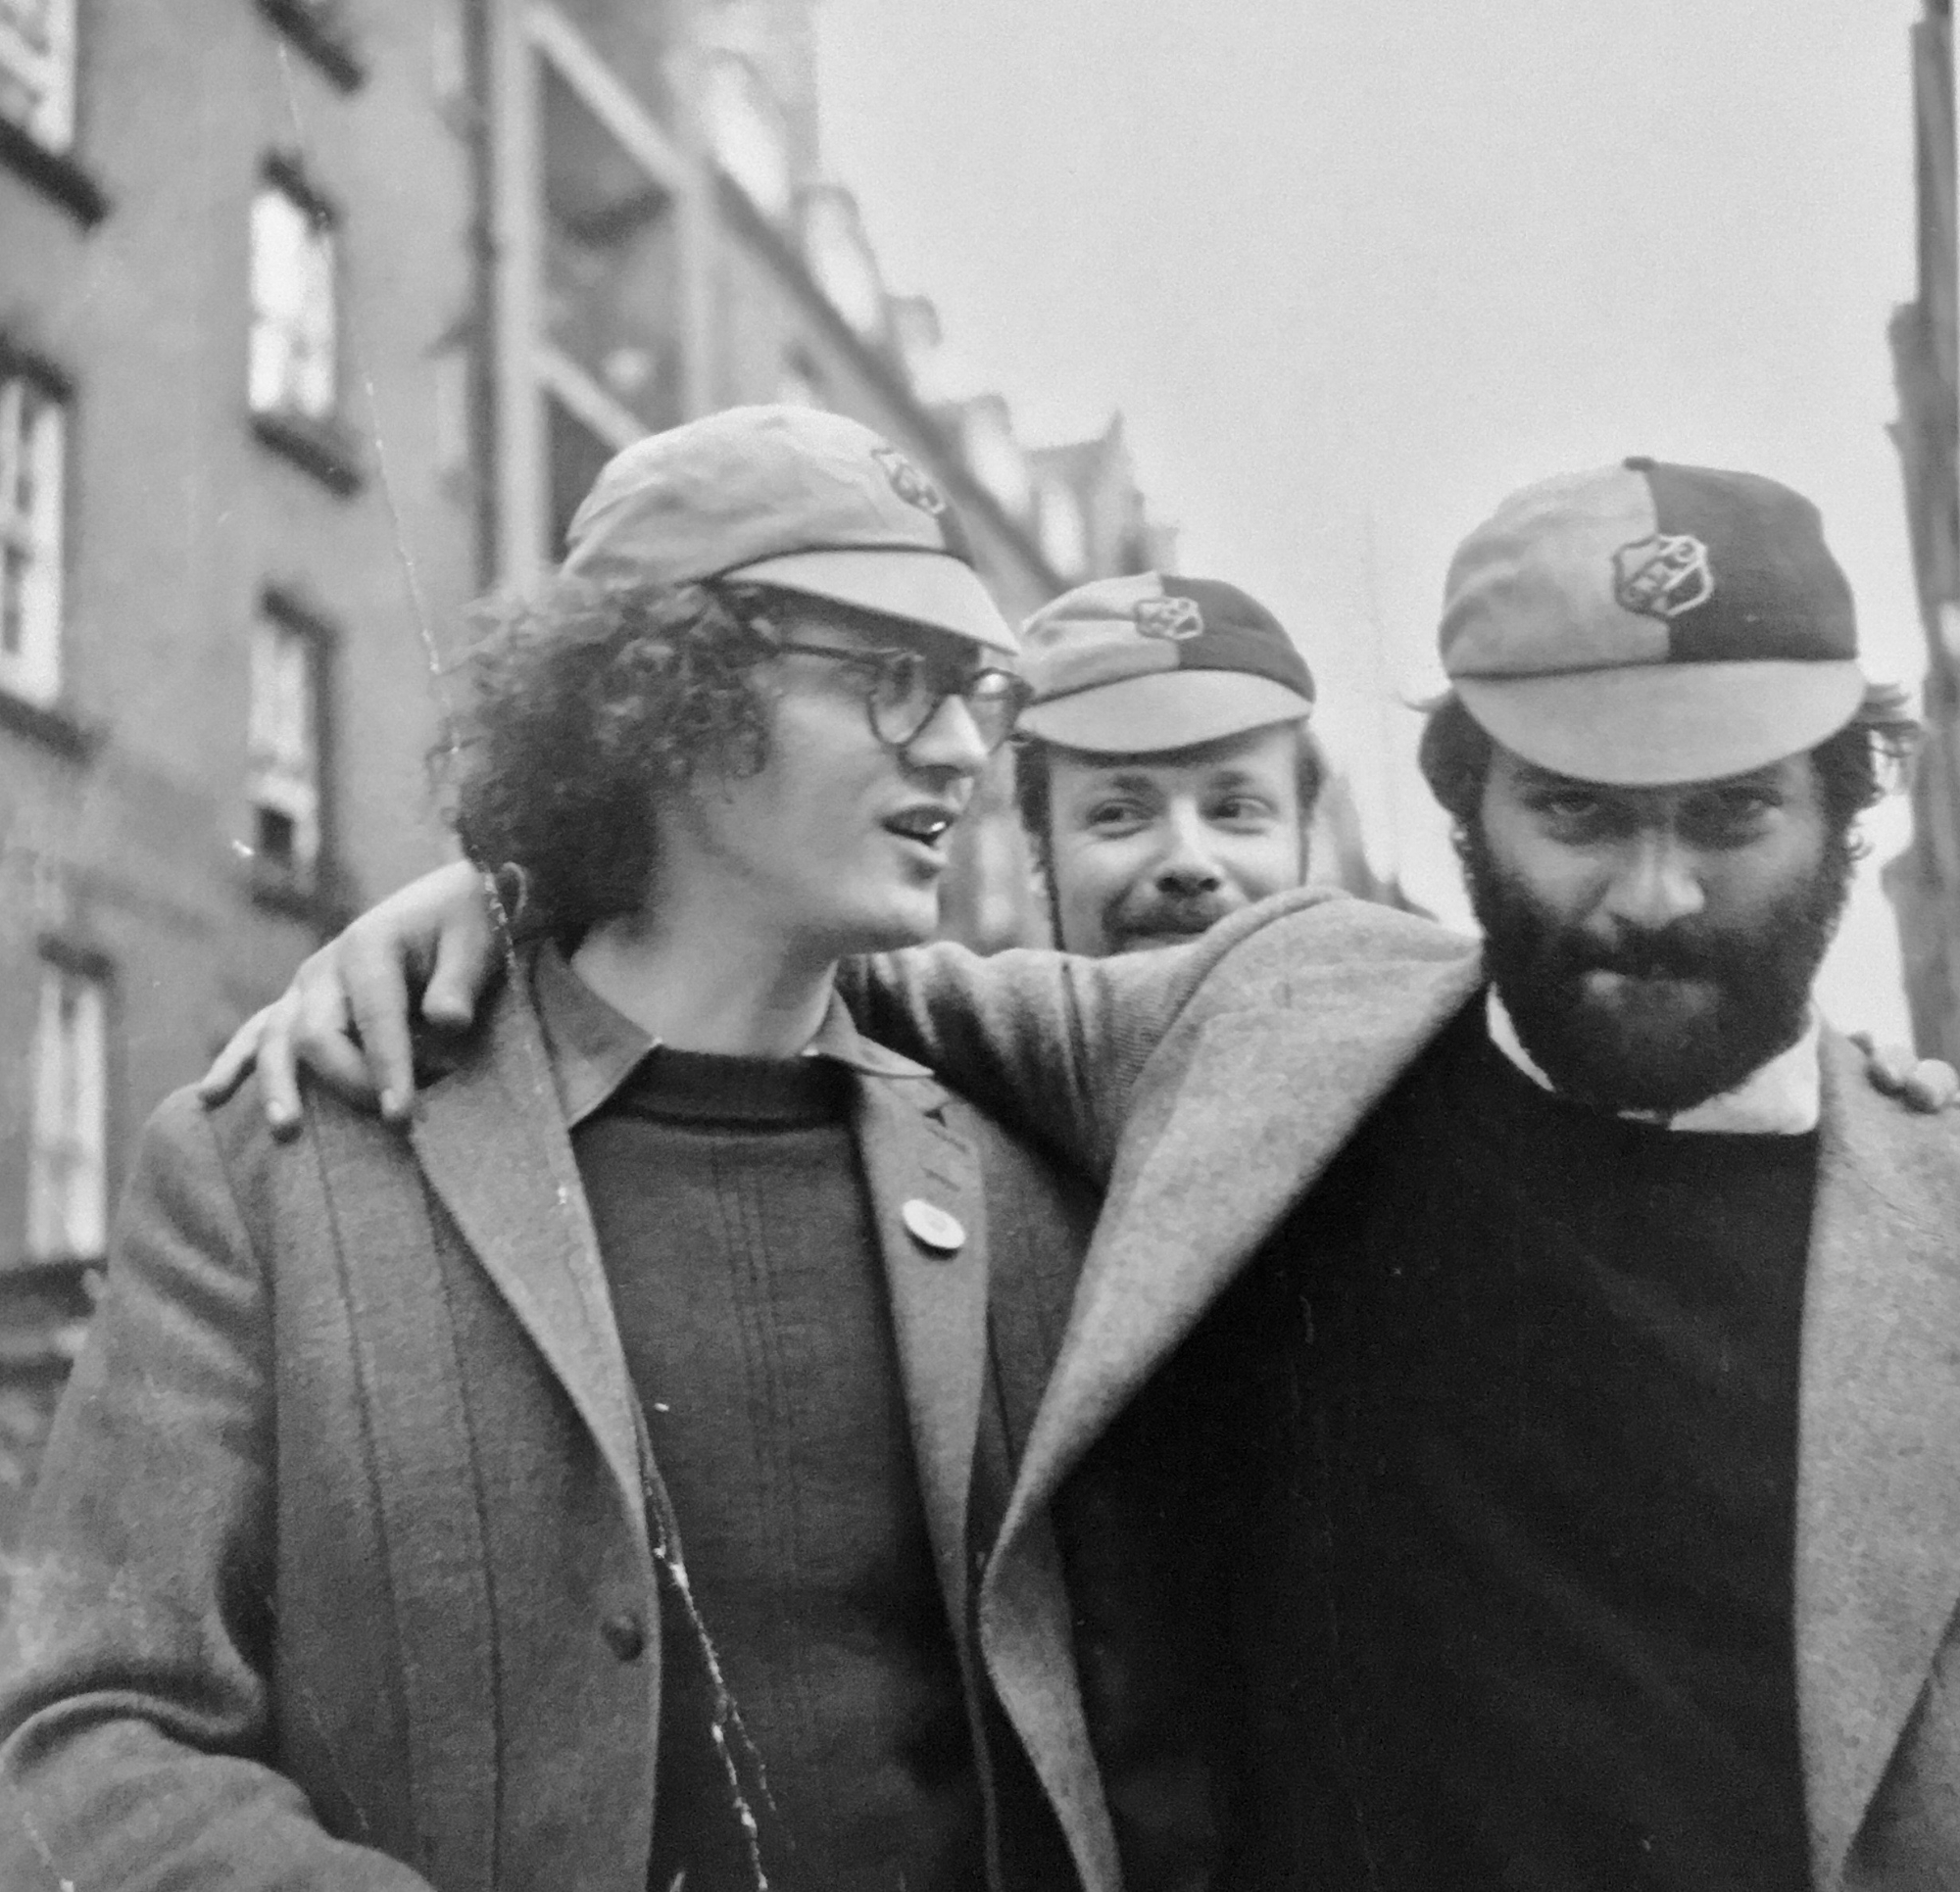 Kocherscheidt with Peter Pongratz (left) and Franz Amin Morat (back), London, c.1970